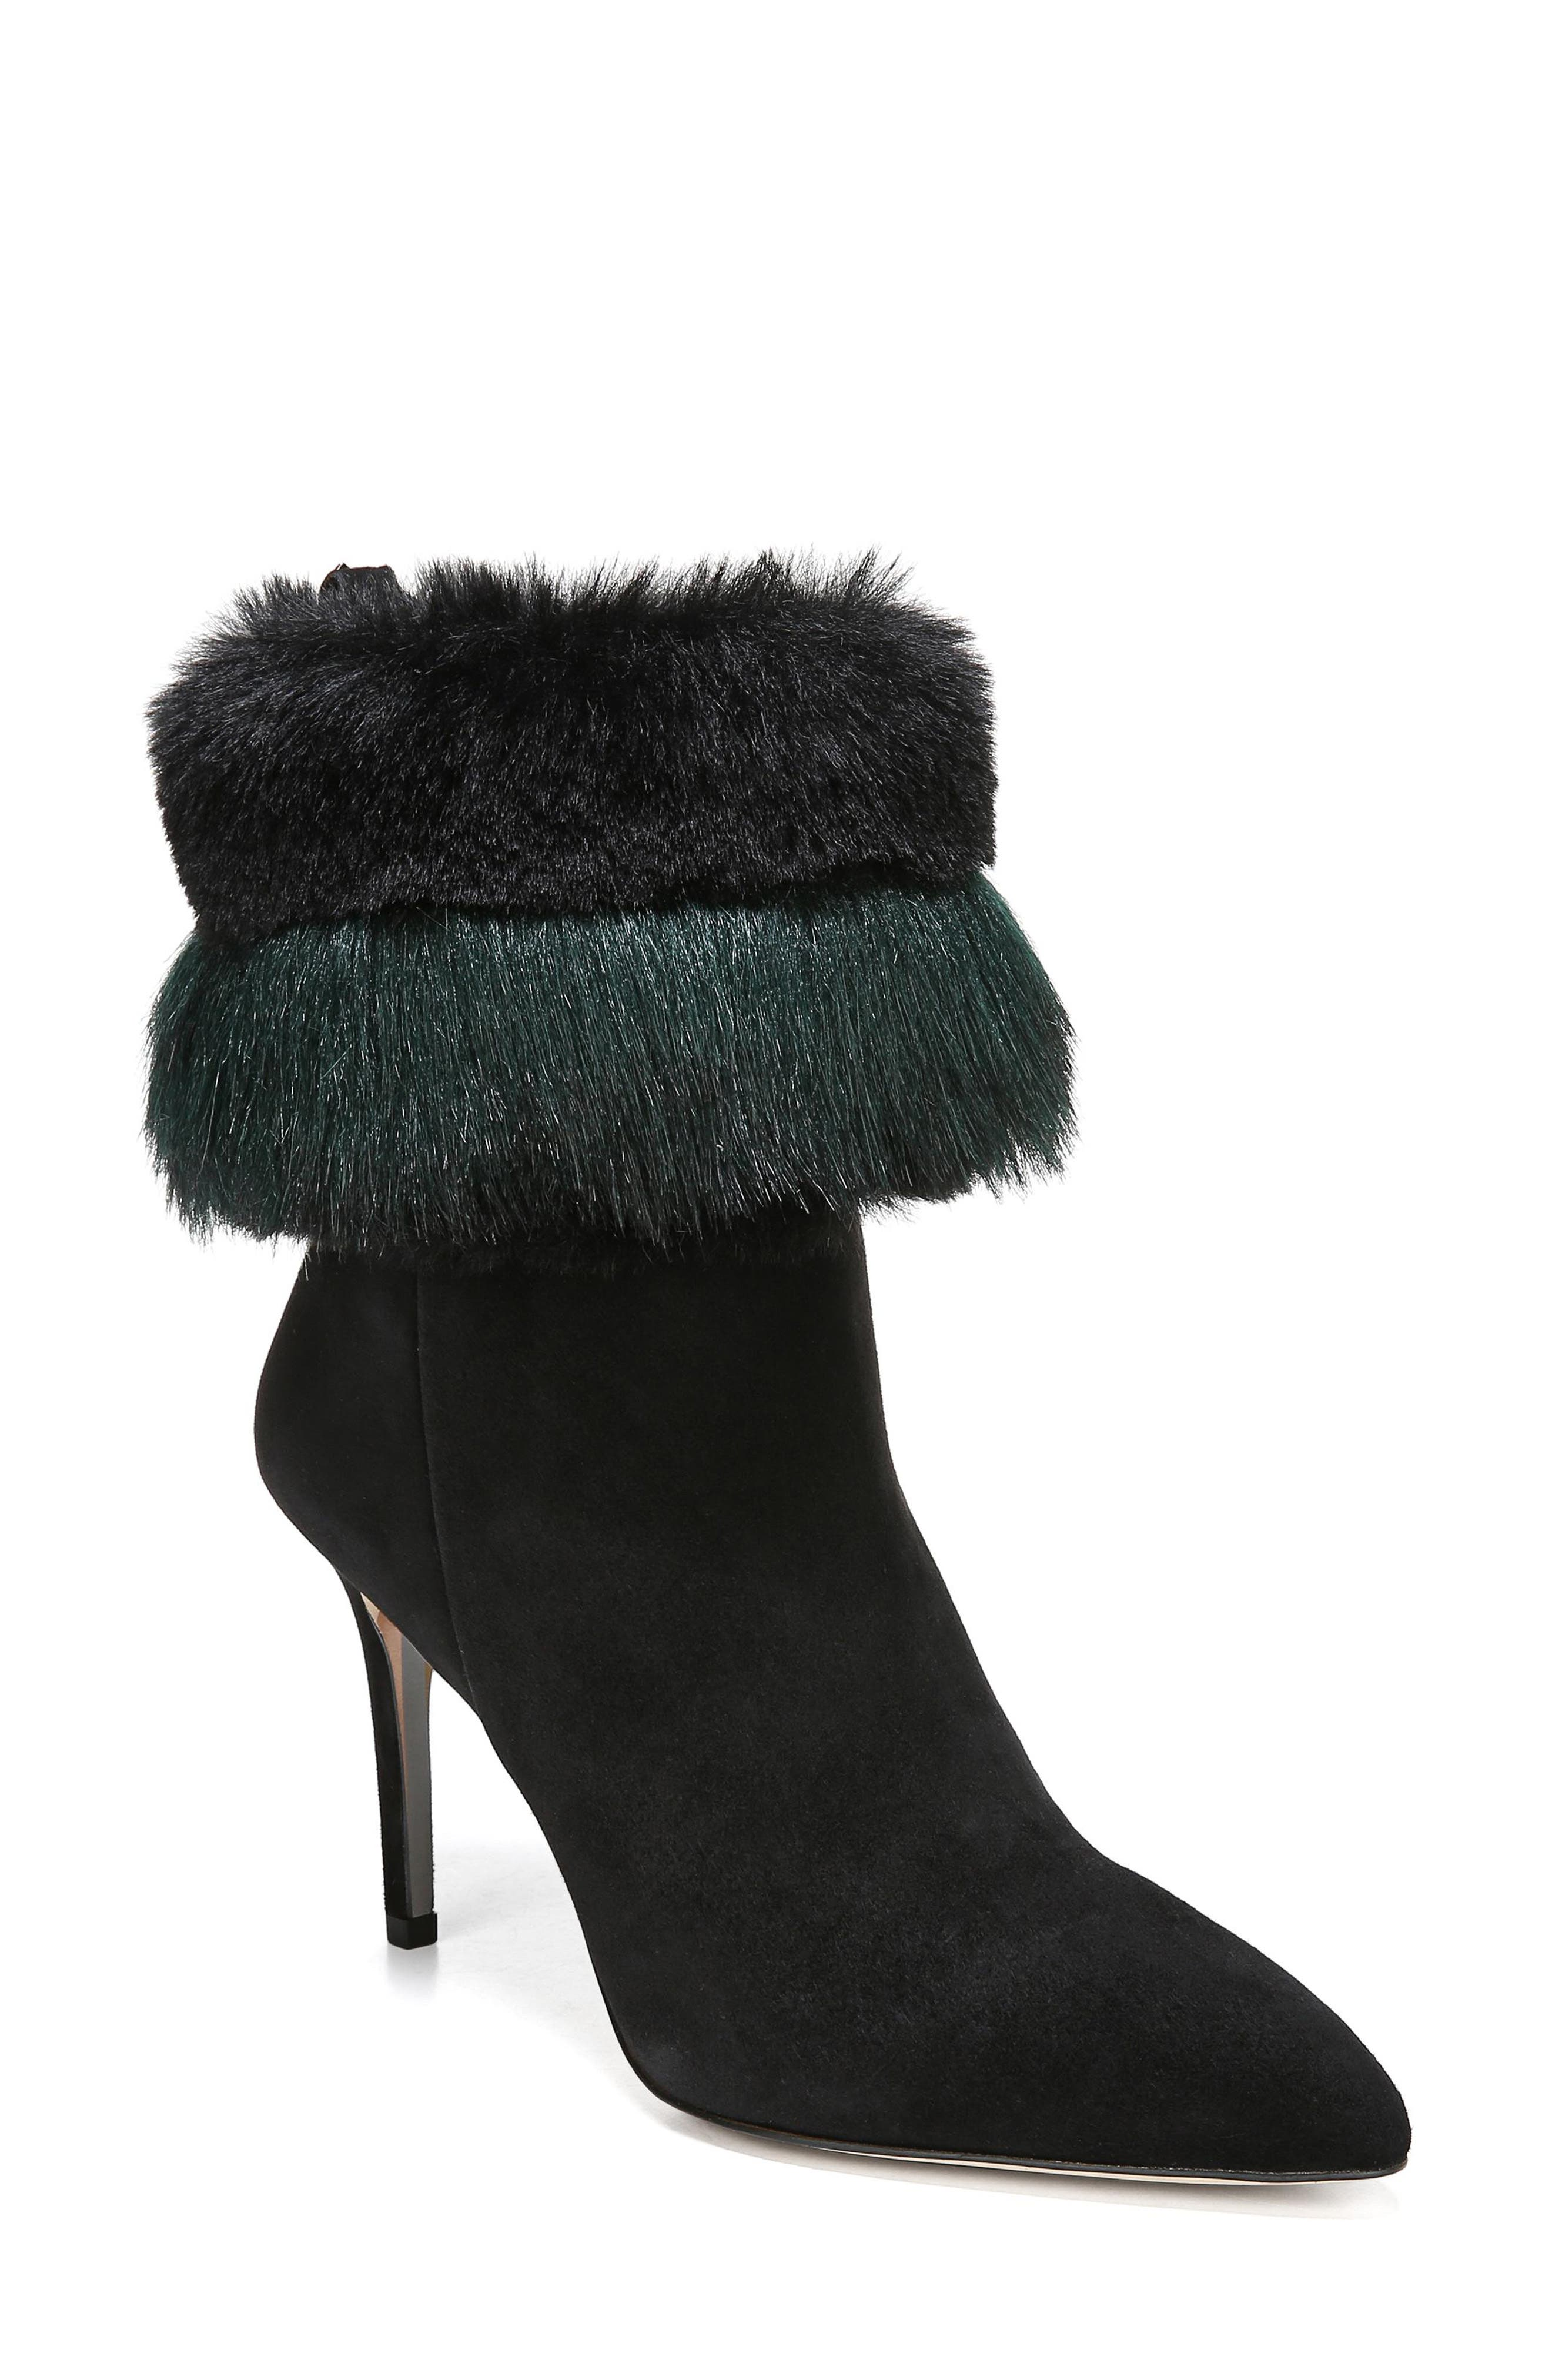 Oleana Faux Fur Trim Bootie by Sam Edelman